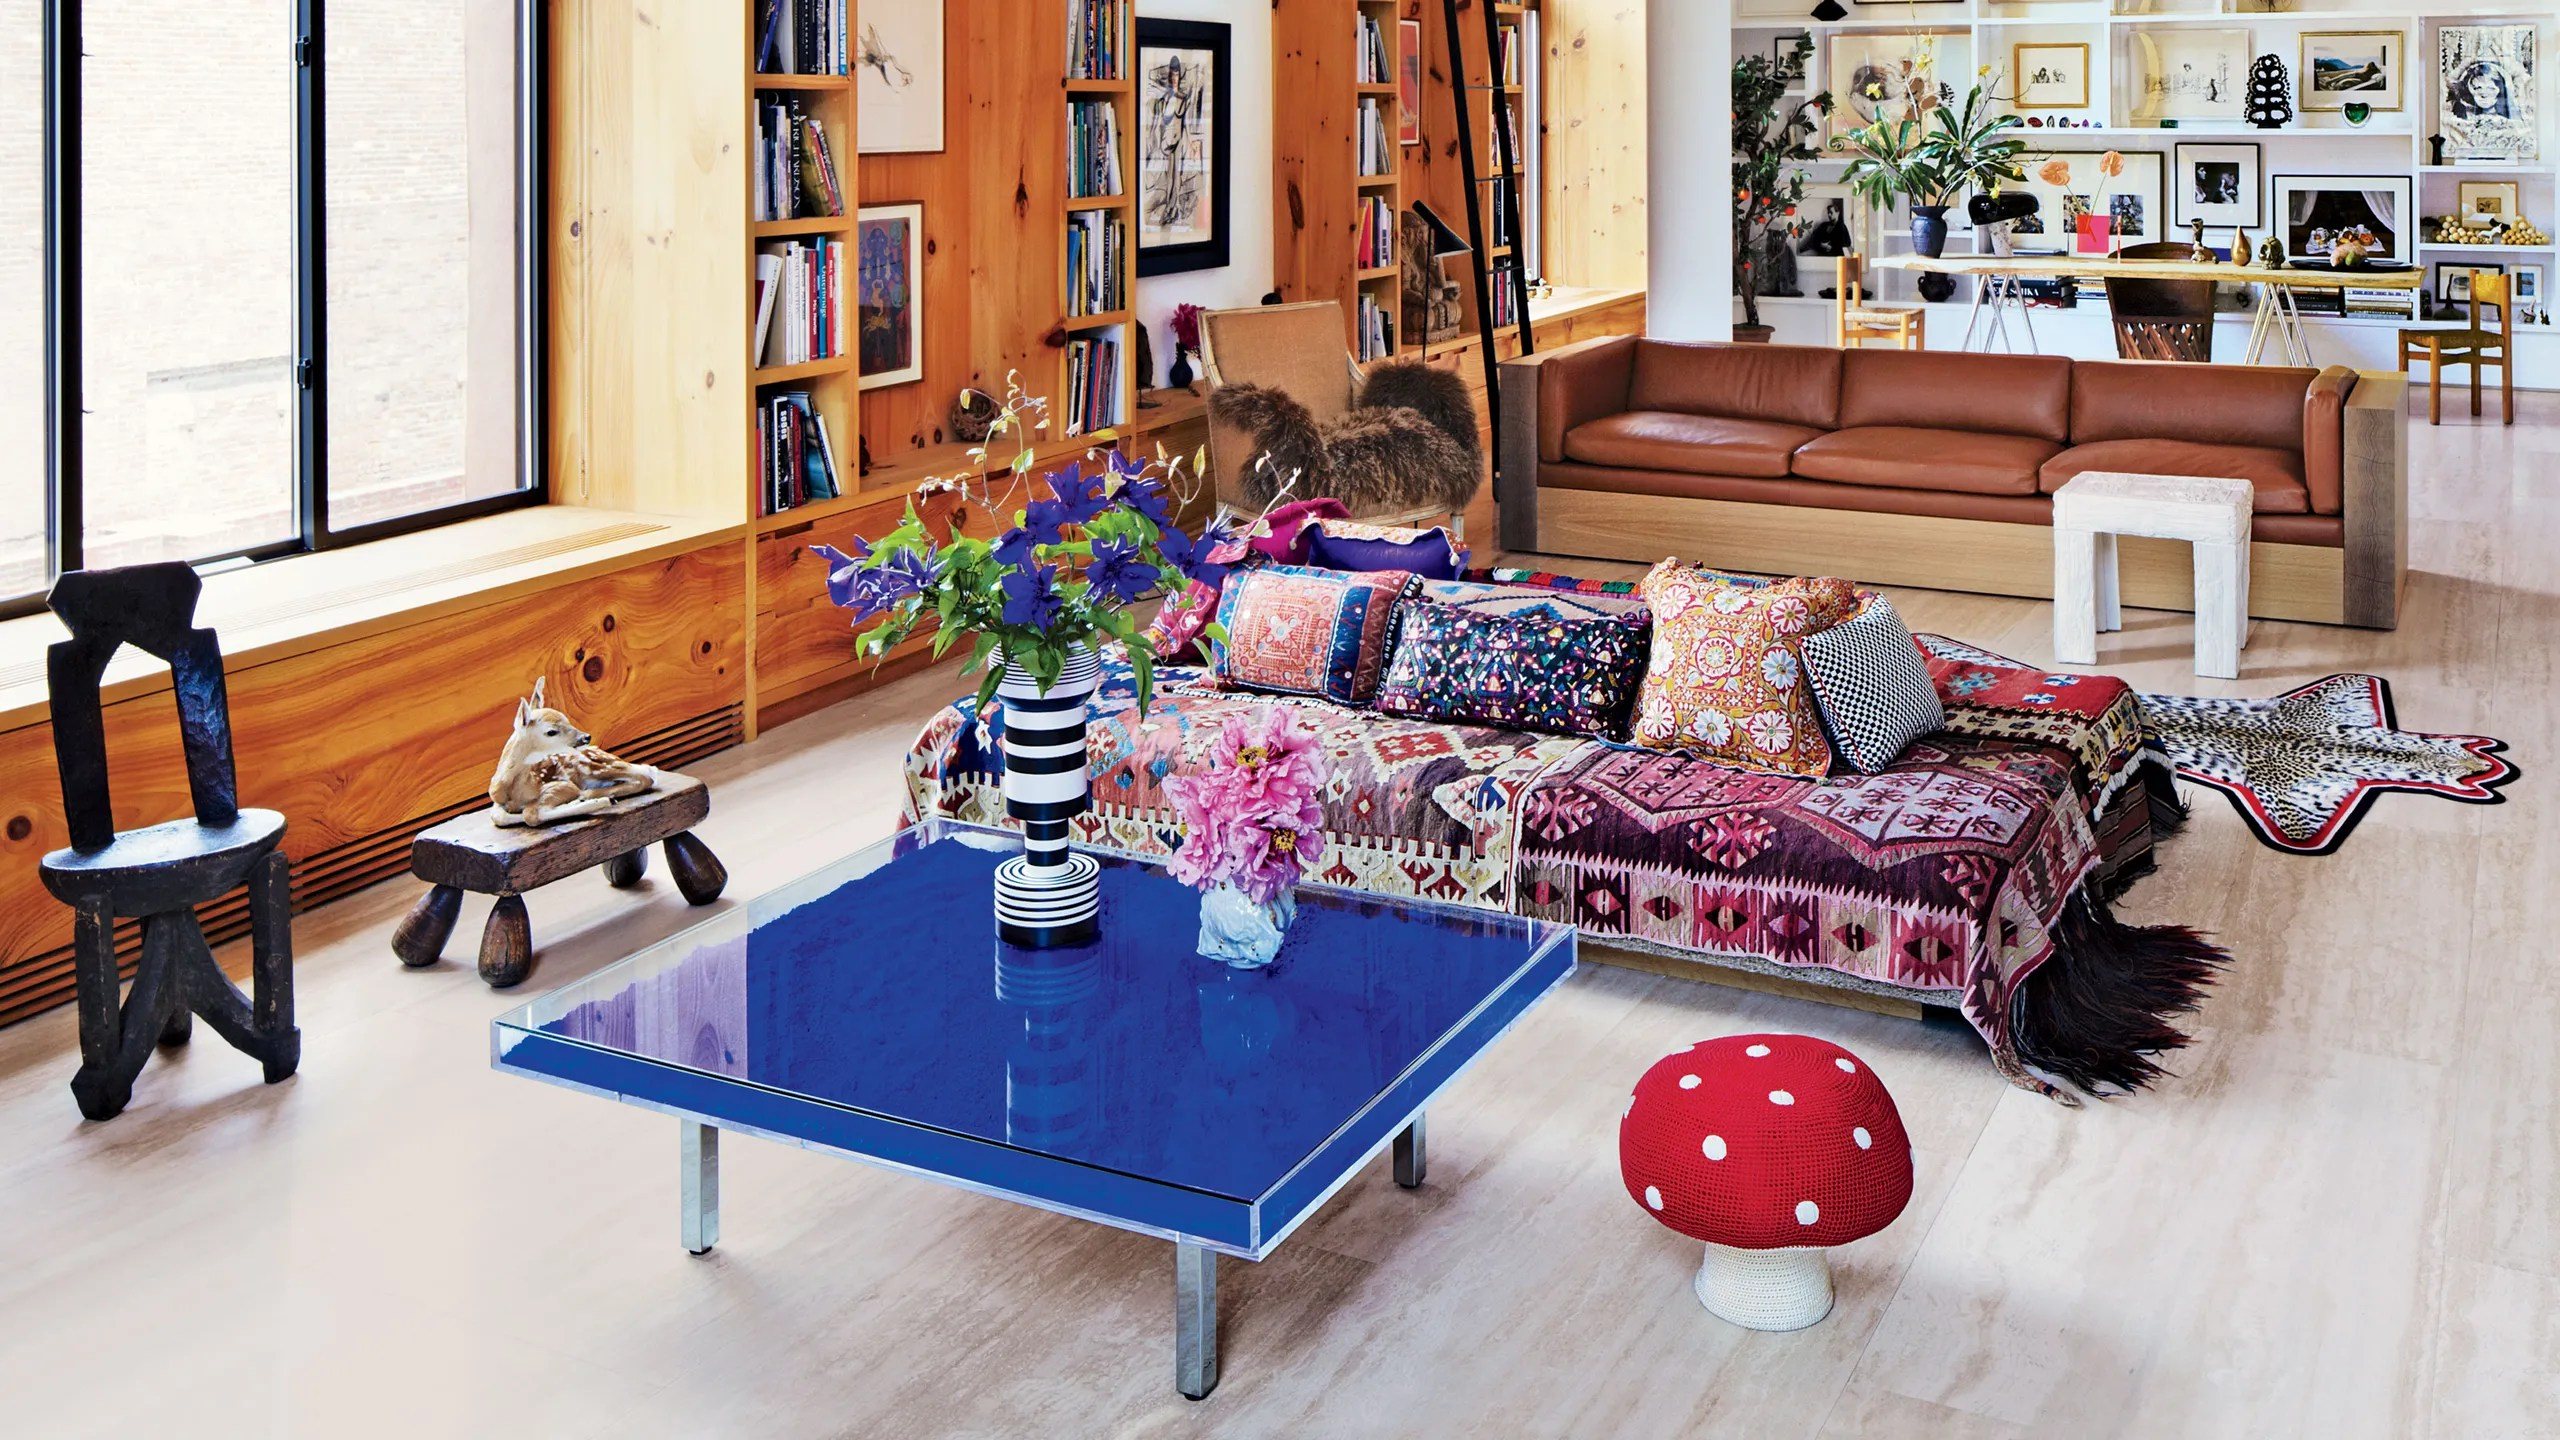 Designer Couch Klein How Yves Klein S Blue Cocktail Table Became A Cult Favorite